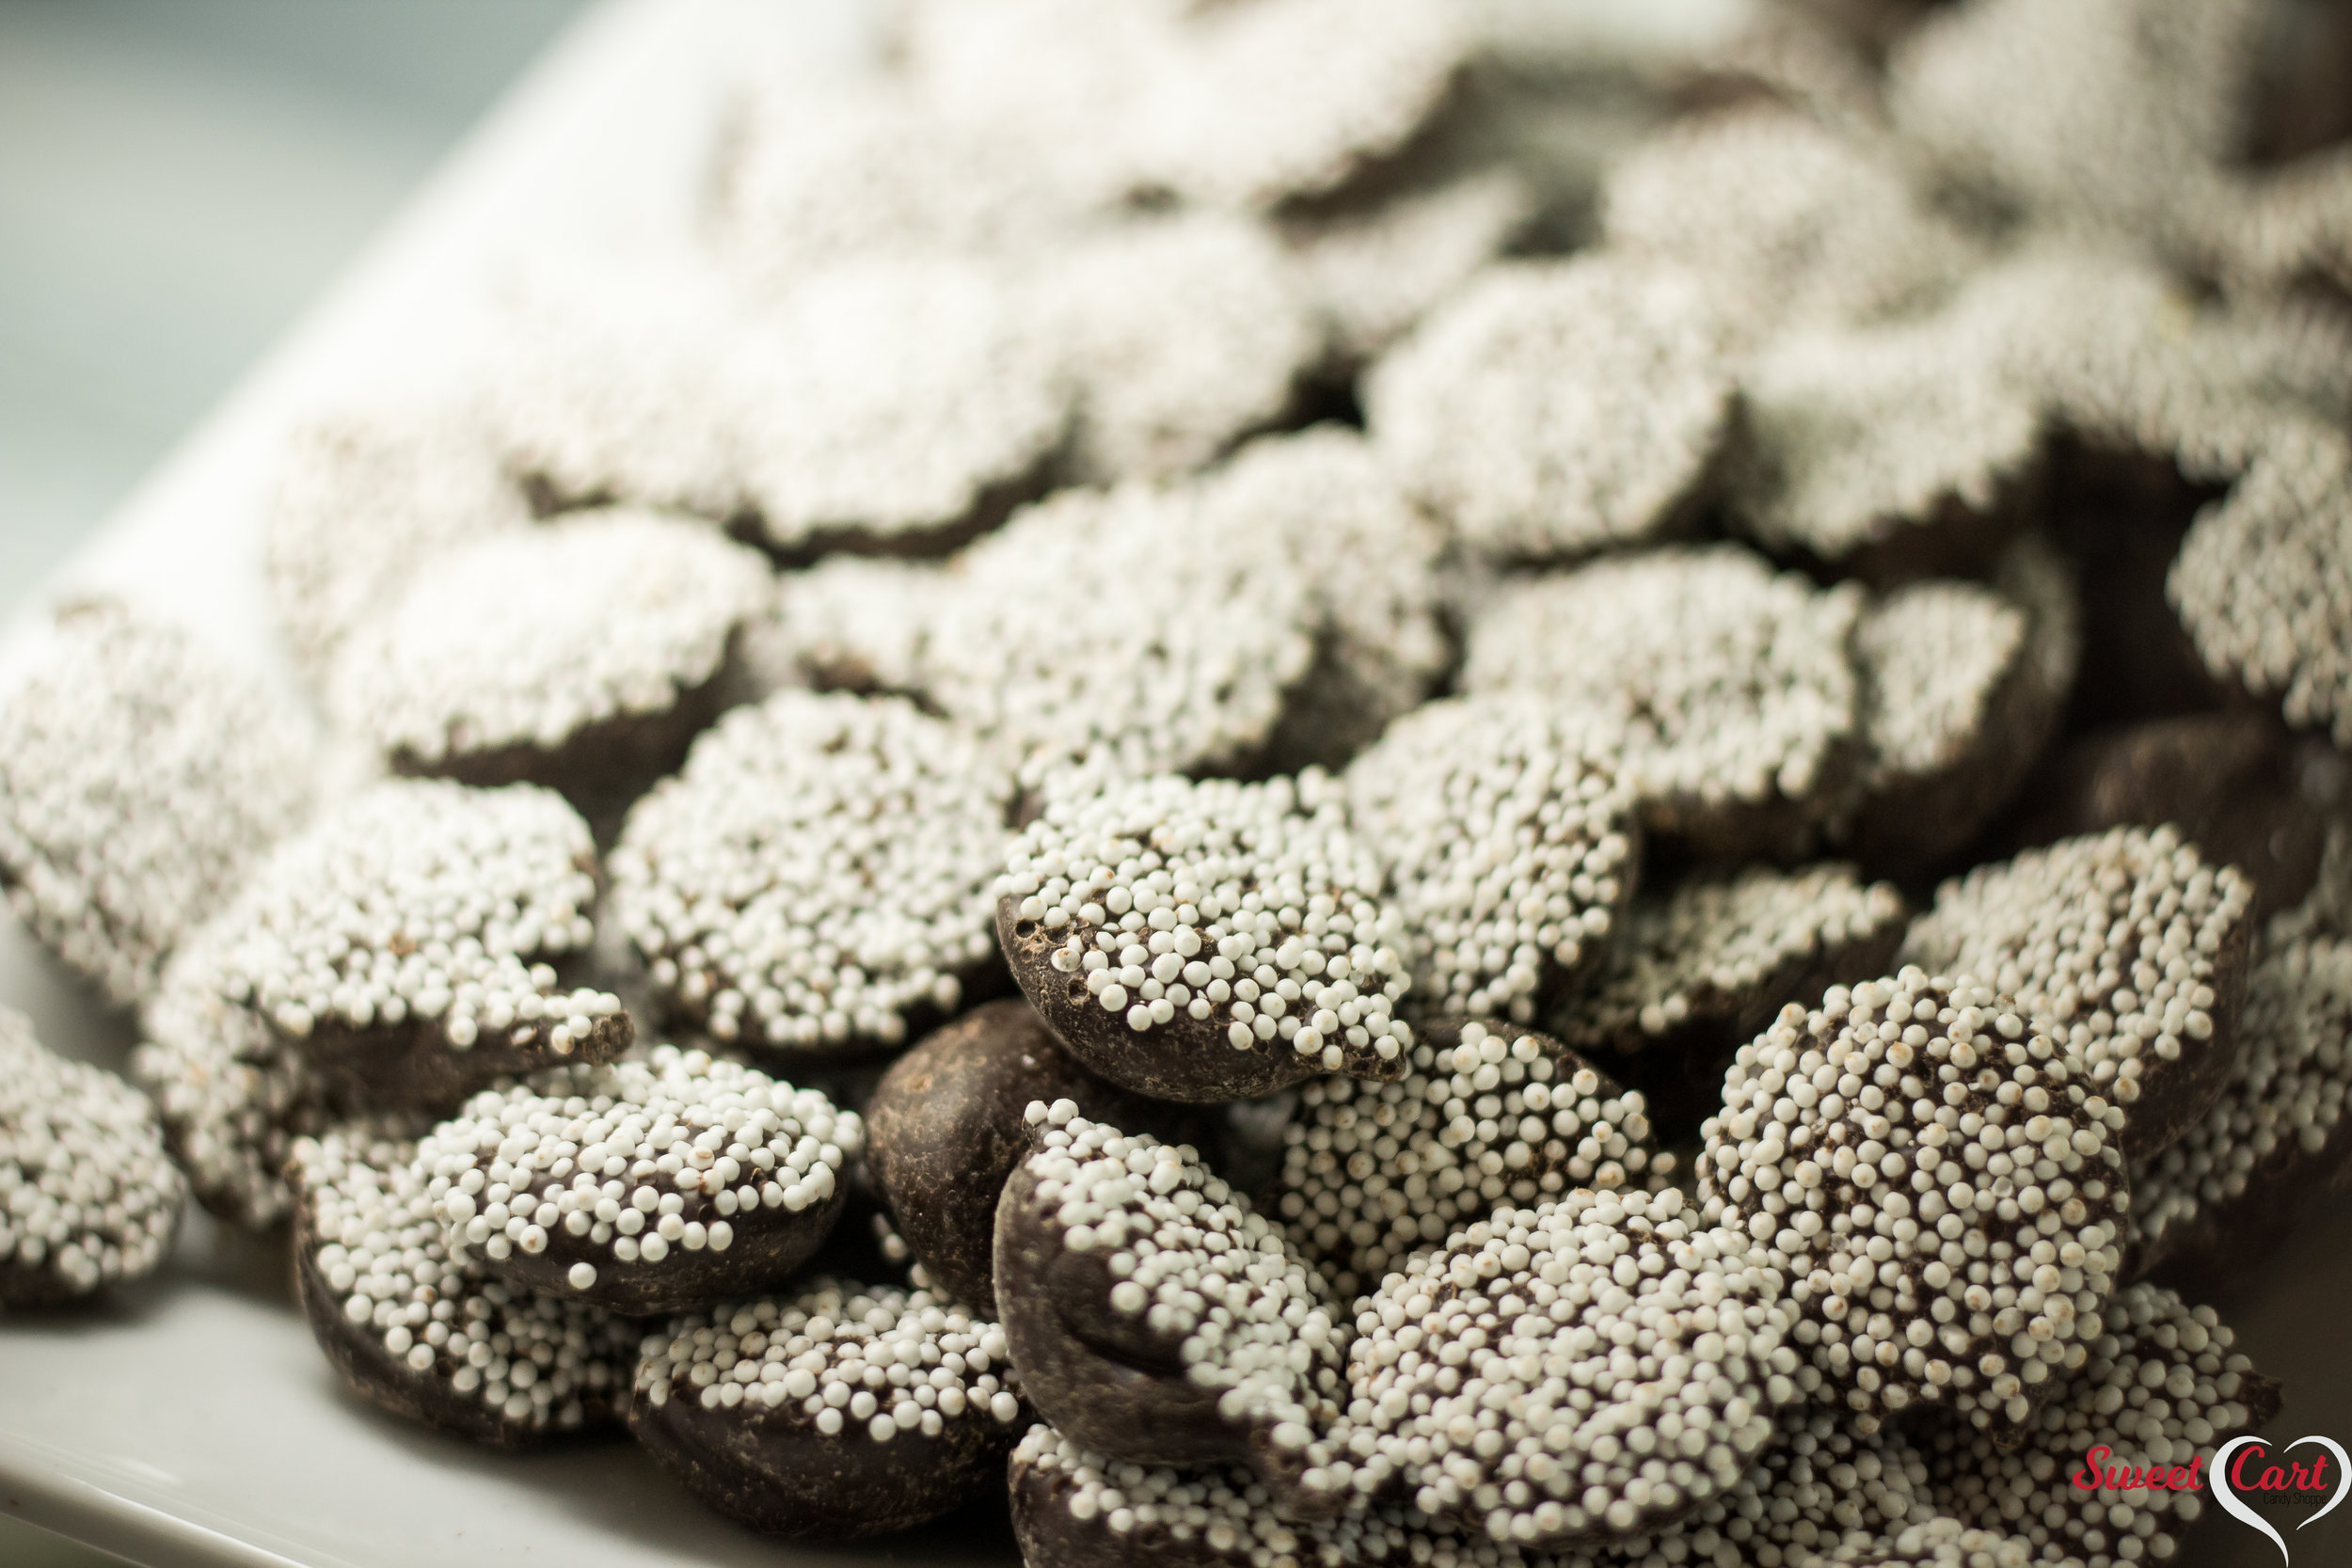 Dark Chocolate Nonpareils   Another classic candy confection! These nonpareils contain delicious Dark Chocolate that is melt-in-your-mouth good.